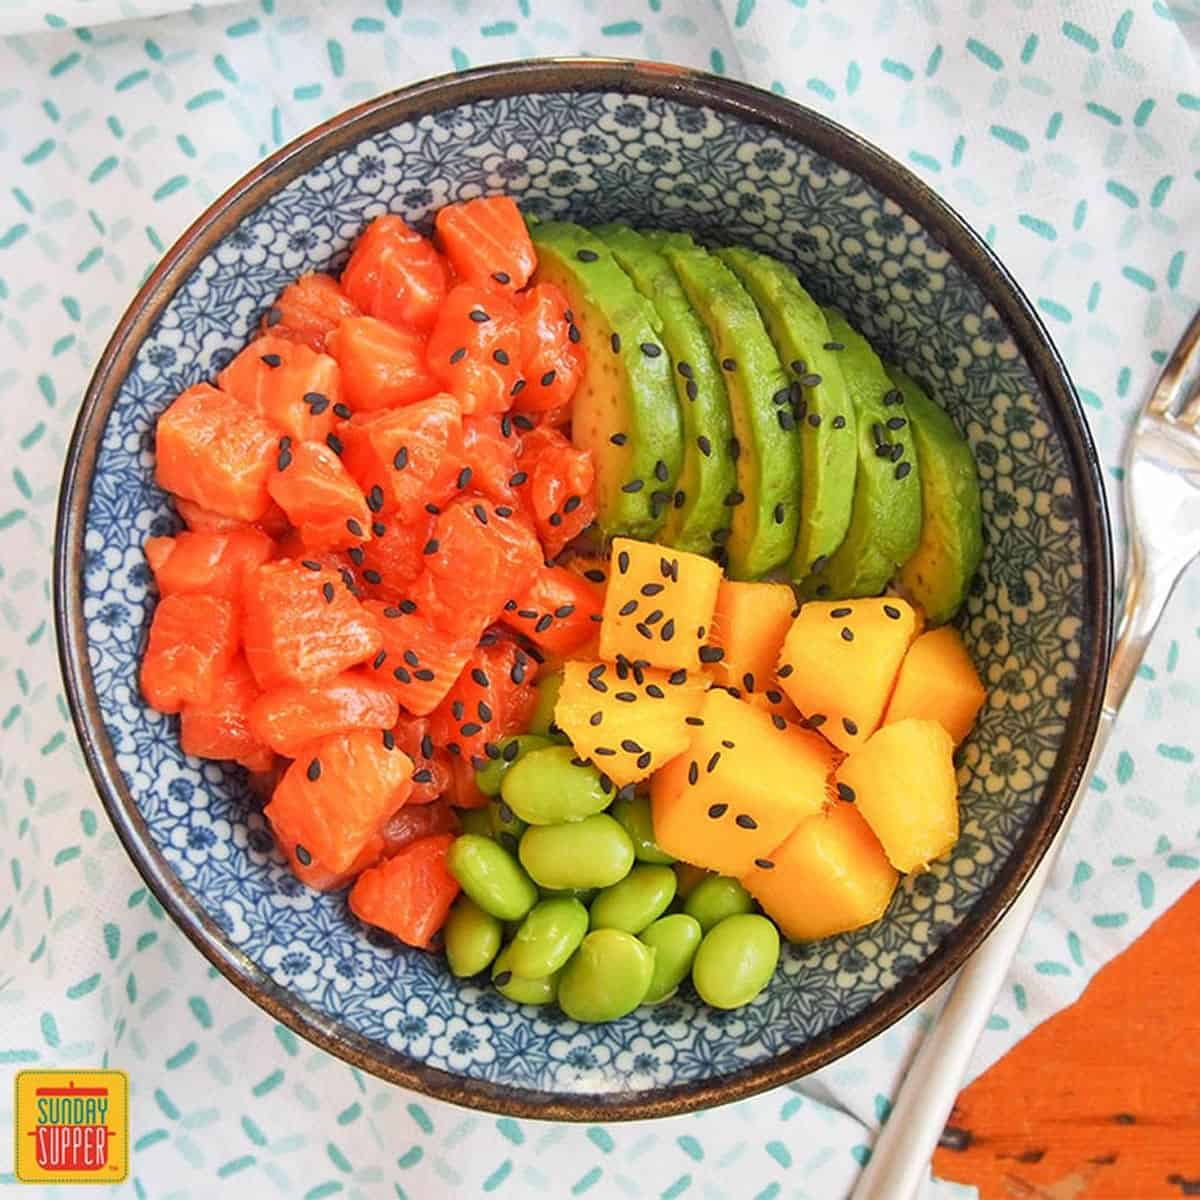 Salmon poke bowl with sesame seeds, avocado, mango, and edamame in a blue and white bowl